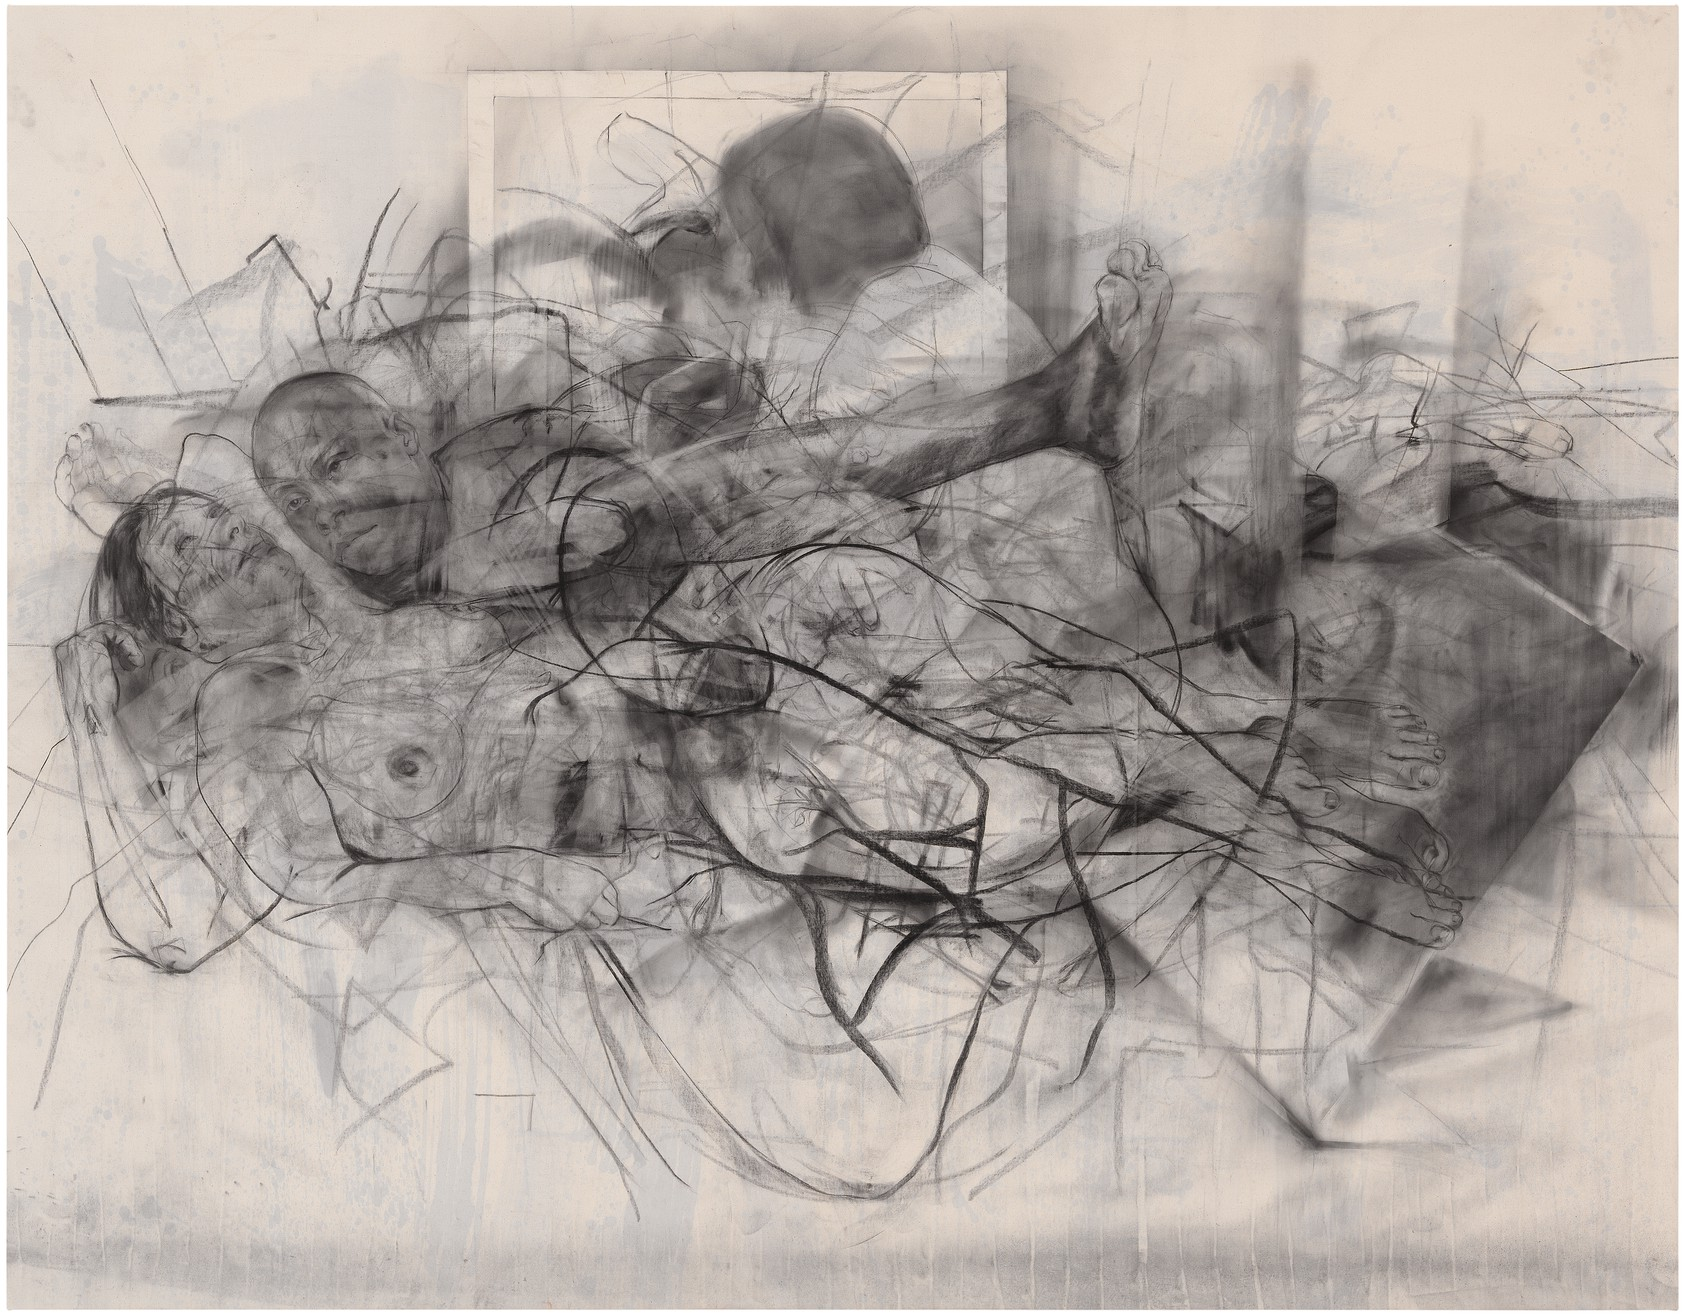 Jenny Saville - In the realm of the Mothers III, 2014 ©Jenny Saville